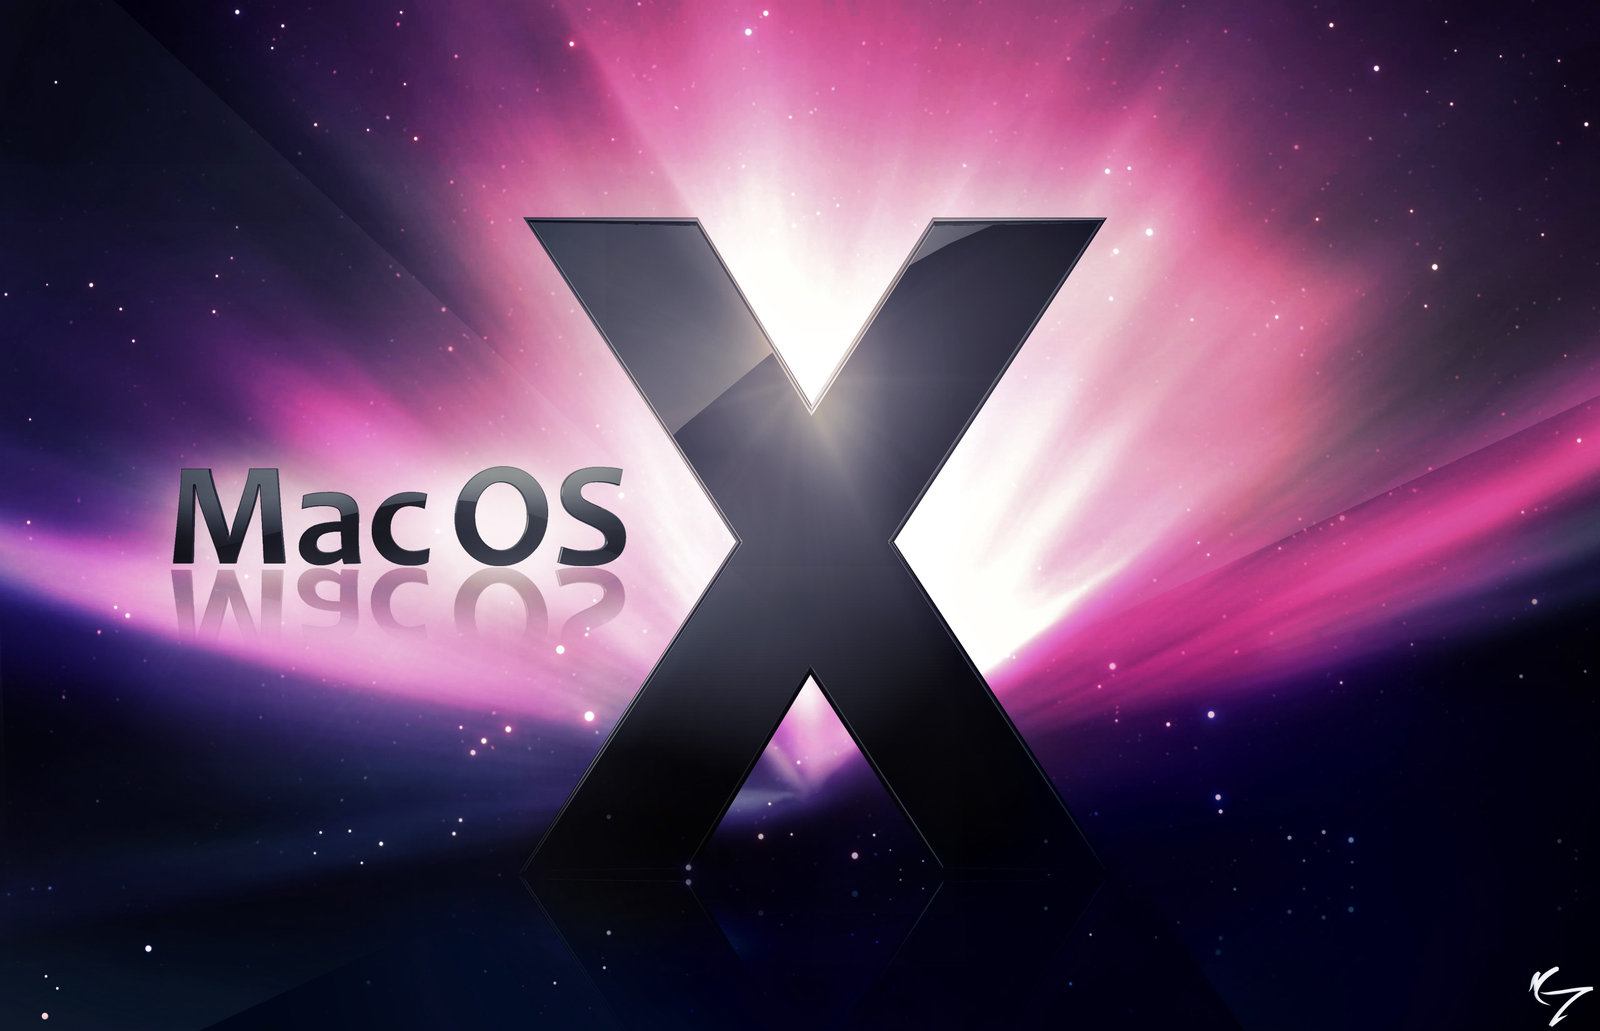 mac_os_x_wallpaper_by_nyclaudiotesta-d2yzsin 600